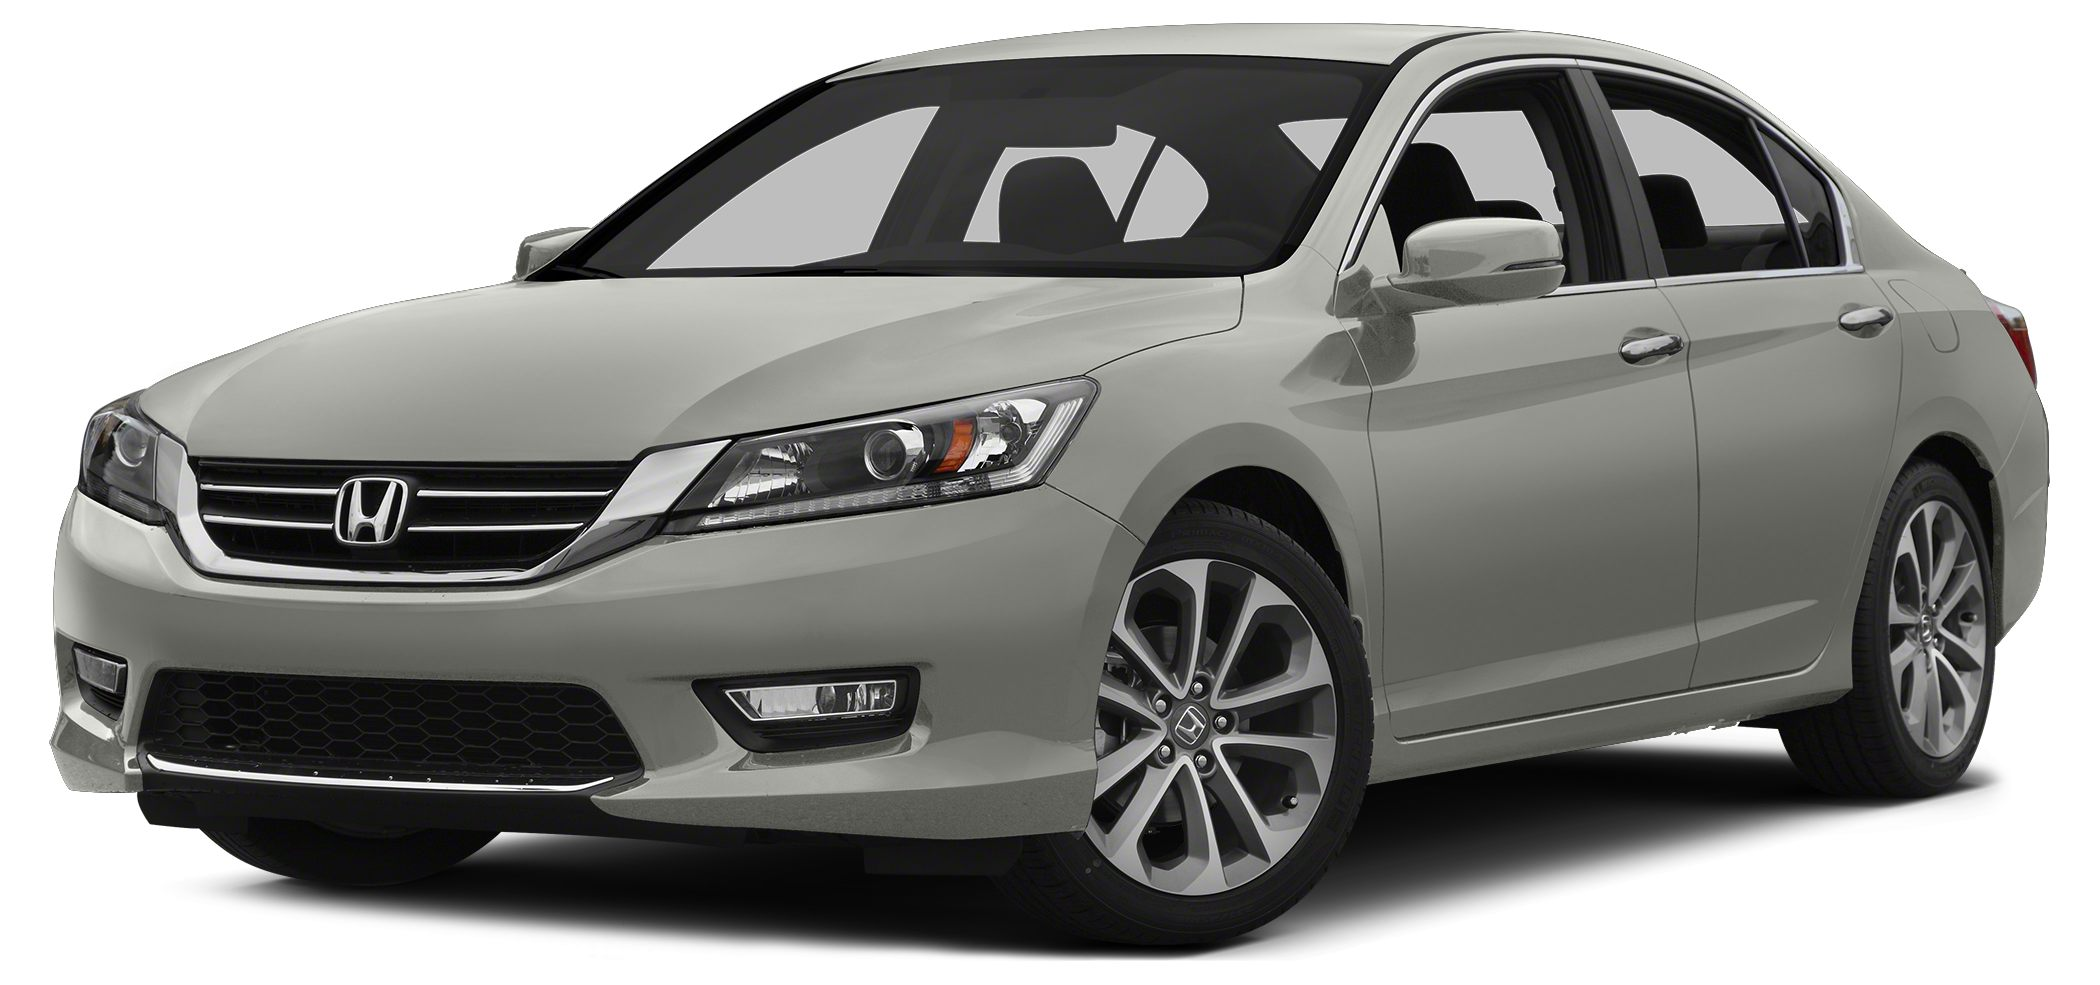 2014 Honda Accord Sport EPA 34 MPG Hwy26 MPG City Alabaster Silver Metallic exterior and Black i